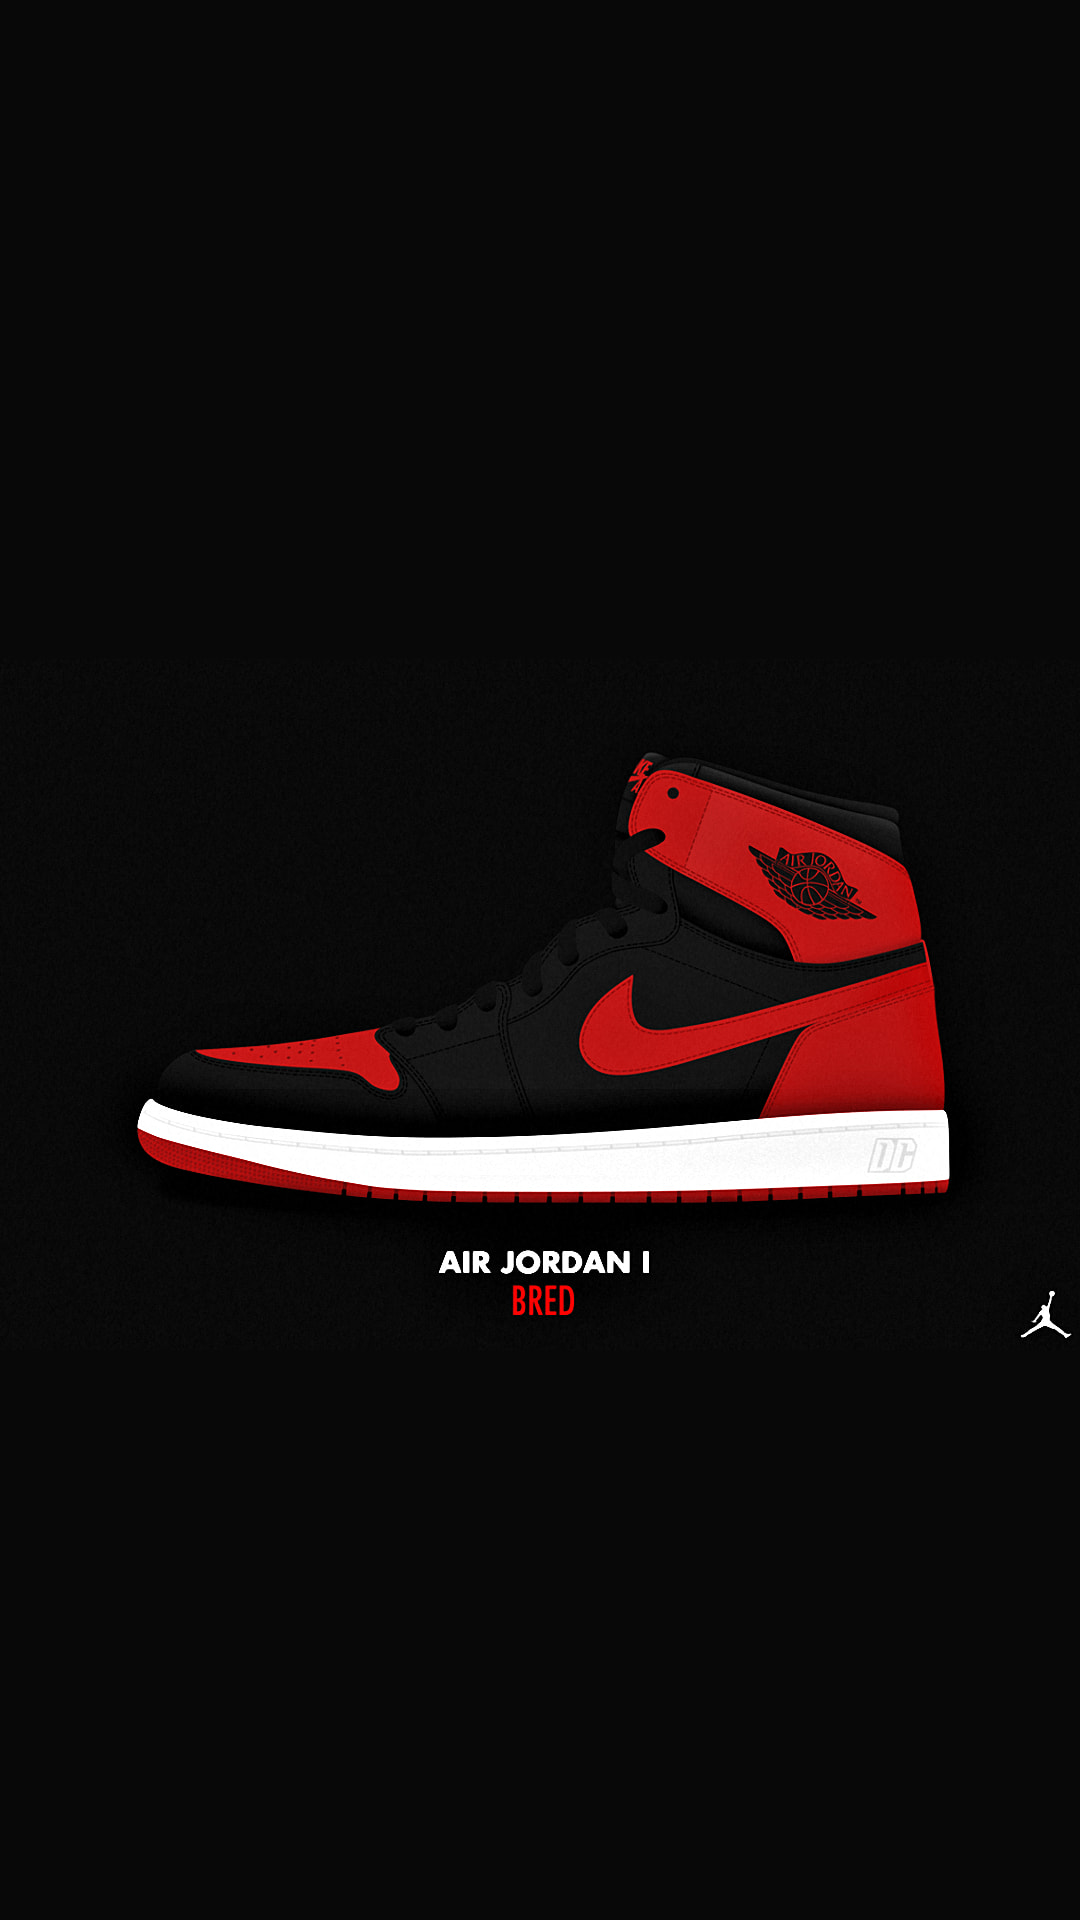 air jordan wallpaper iphone e82fe3a70bdd62bc820436468d82d47b raw